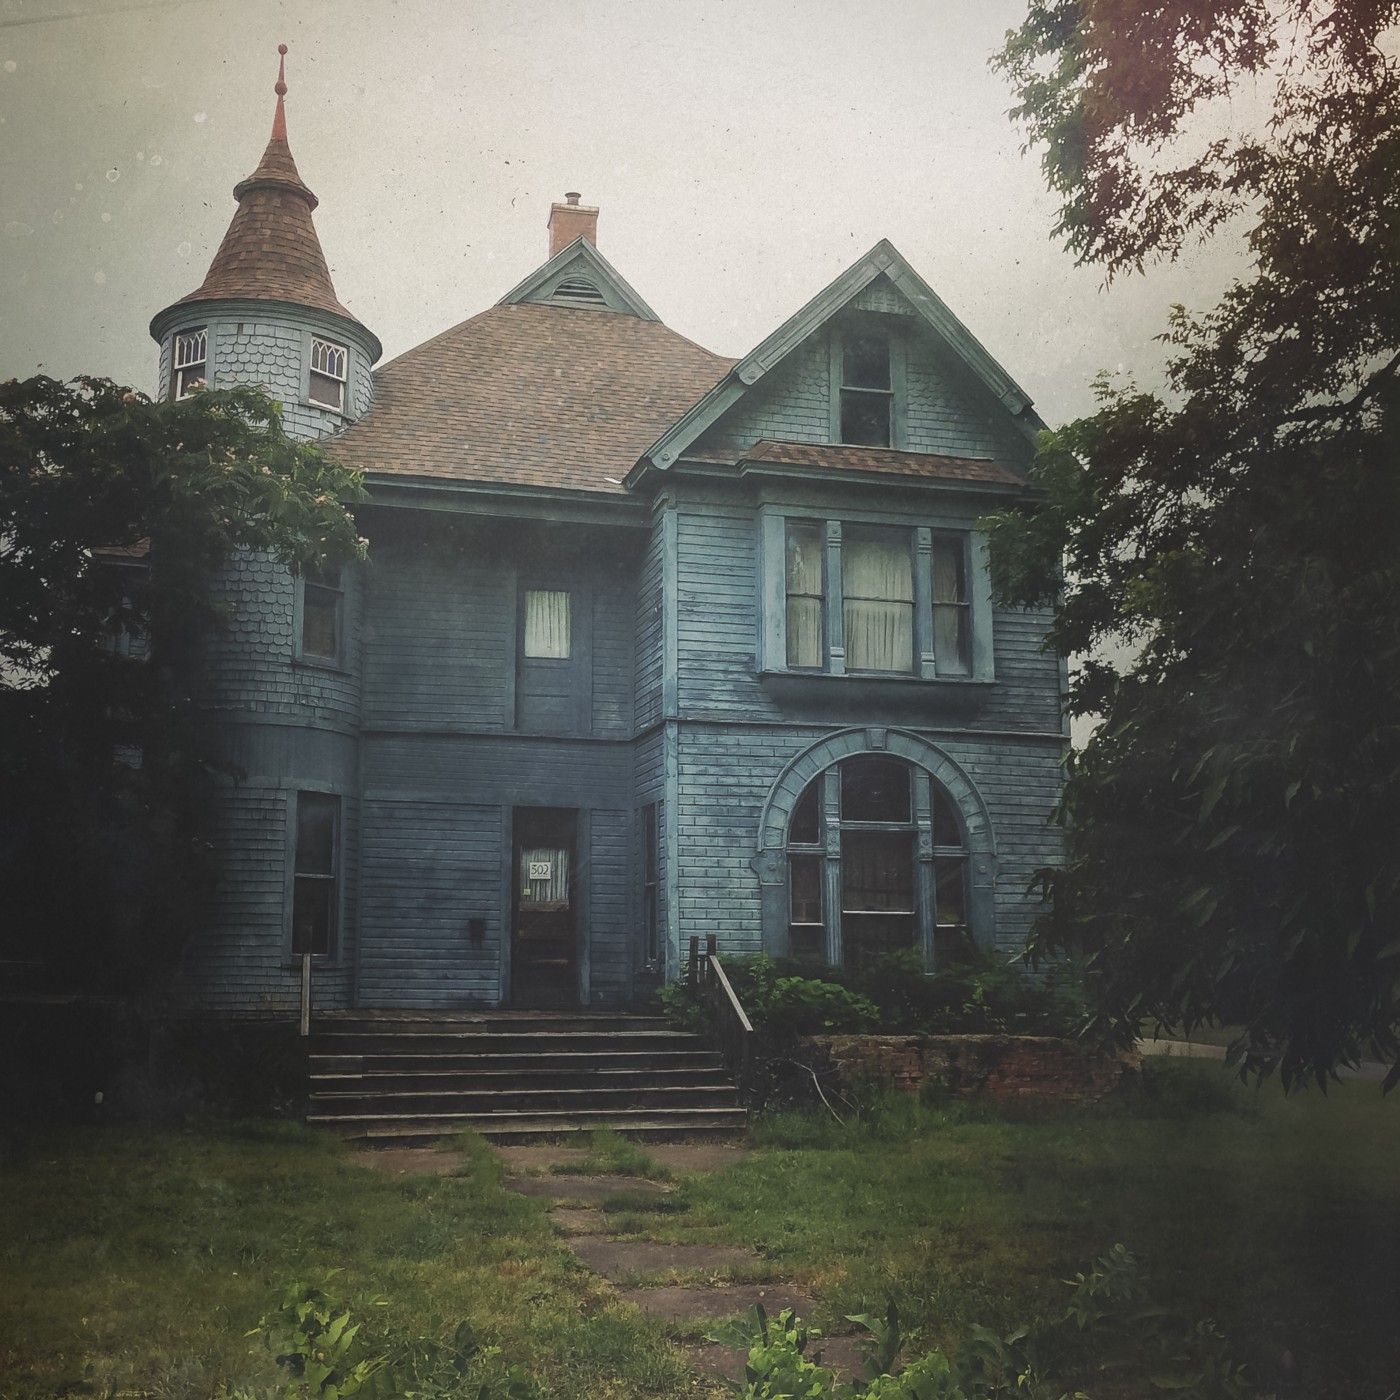 Creepy looking house with turret, steps and air of abandonment.